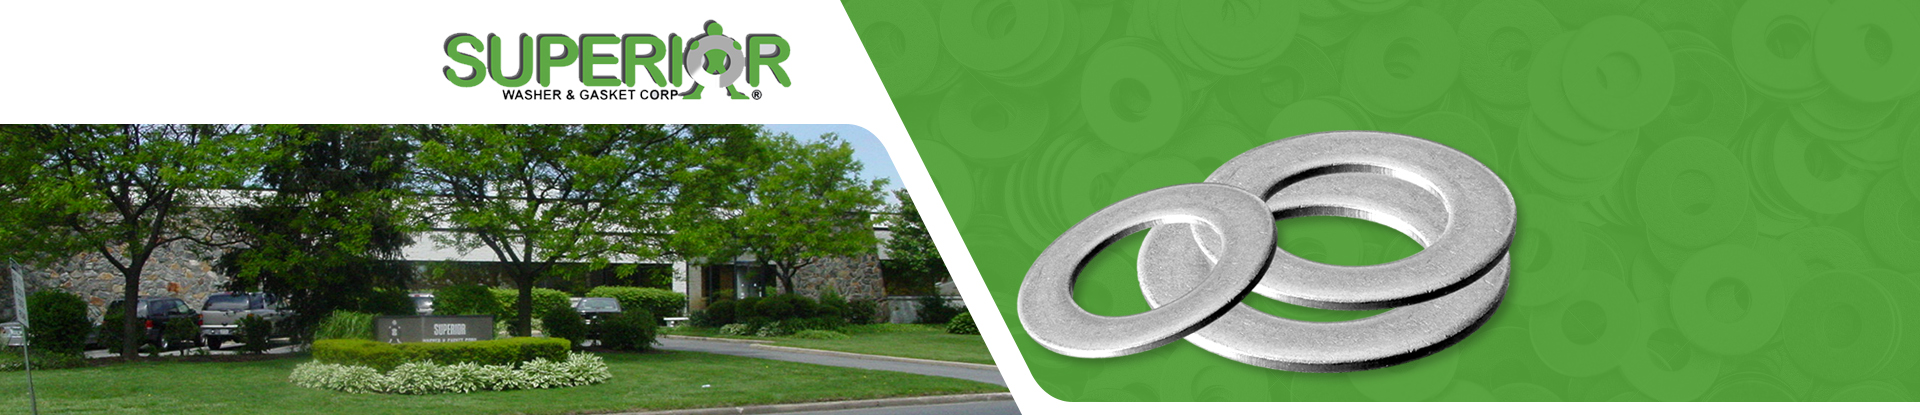 Superior Washer & Gasket Corp